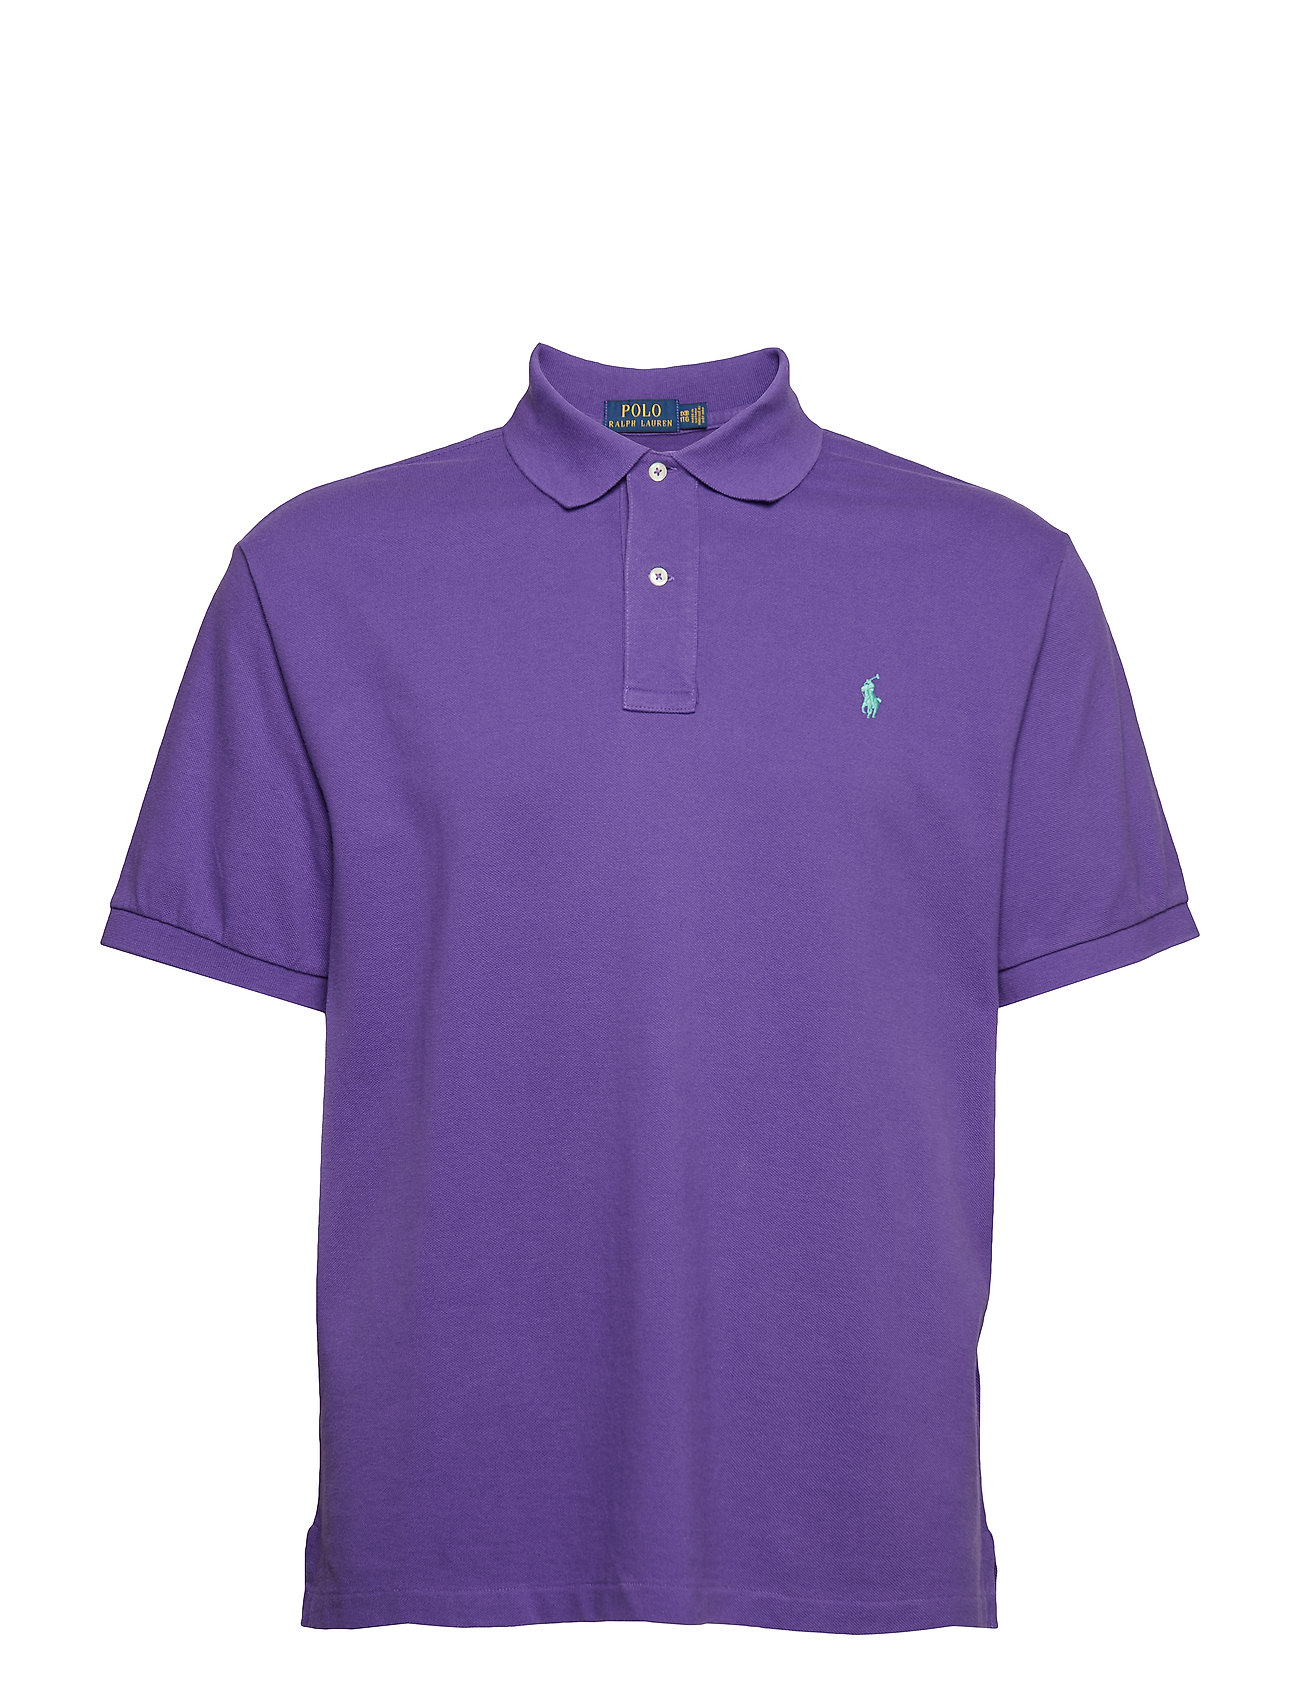 8d6c5484201 Classic Fit Mesh Polo Shirt (Cabana Purple) (£90) - Polo Ralph ...